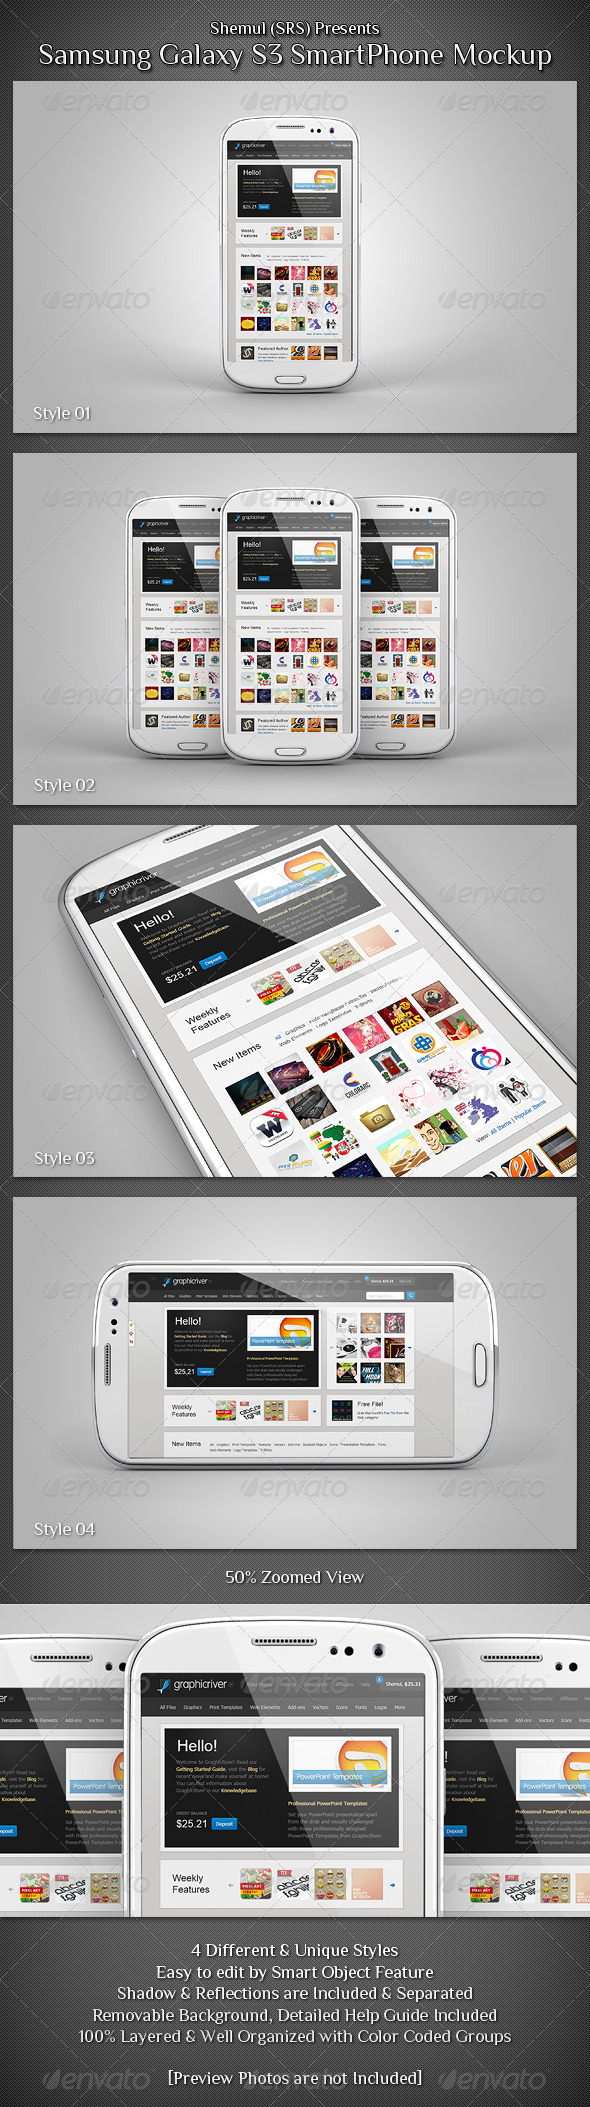 Galaxy S3 Smartphone Mockup - Mobile Displays